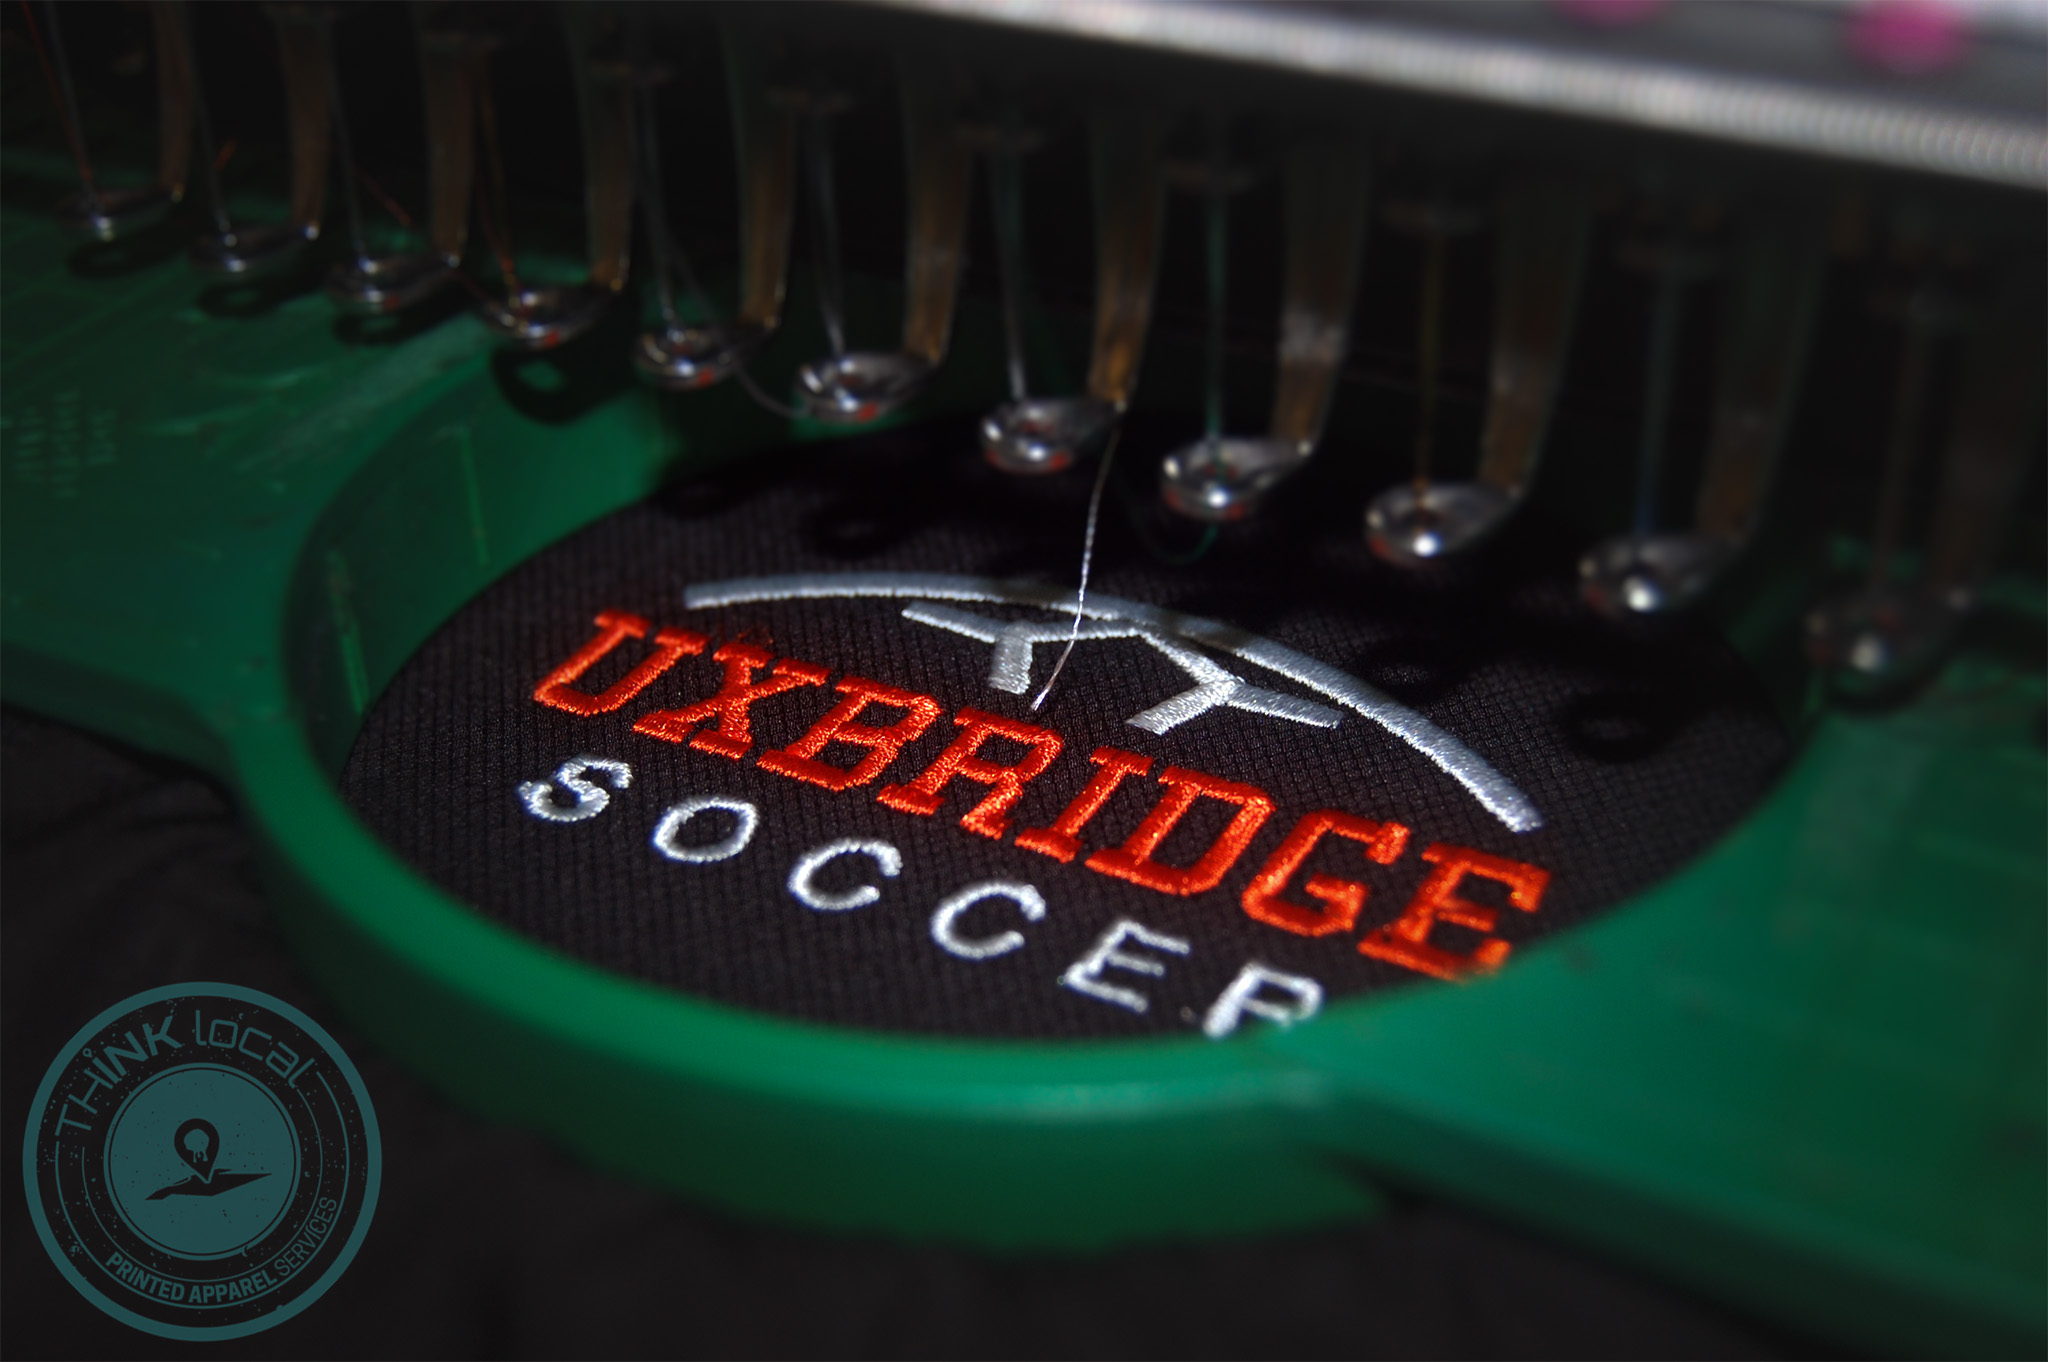 uxbridge-soccer-left-chest-close-up-fb-post.jpg